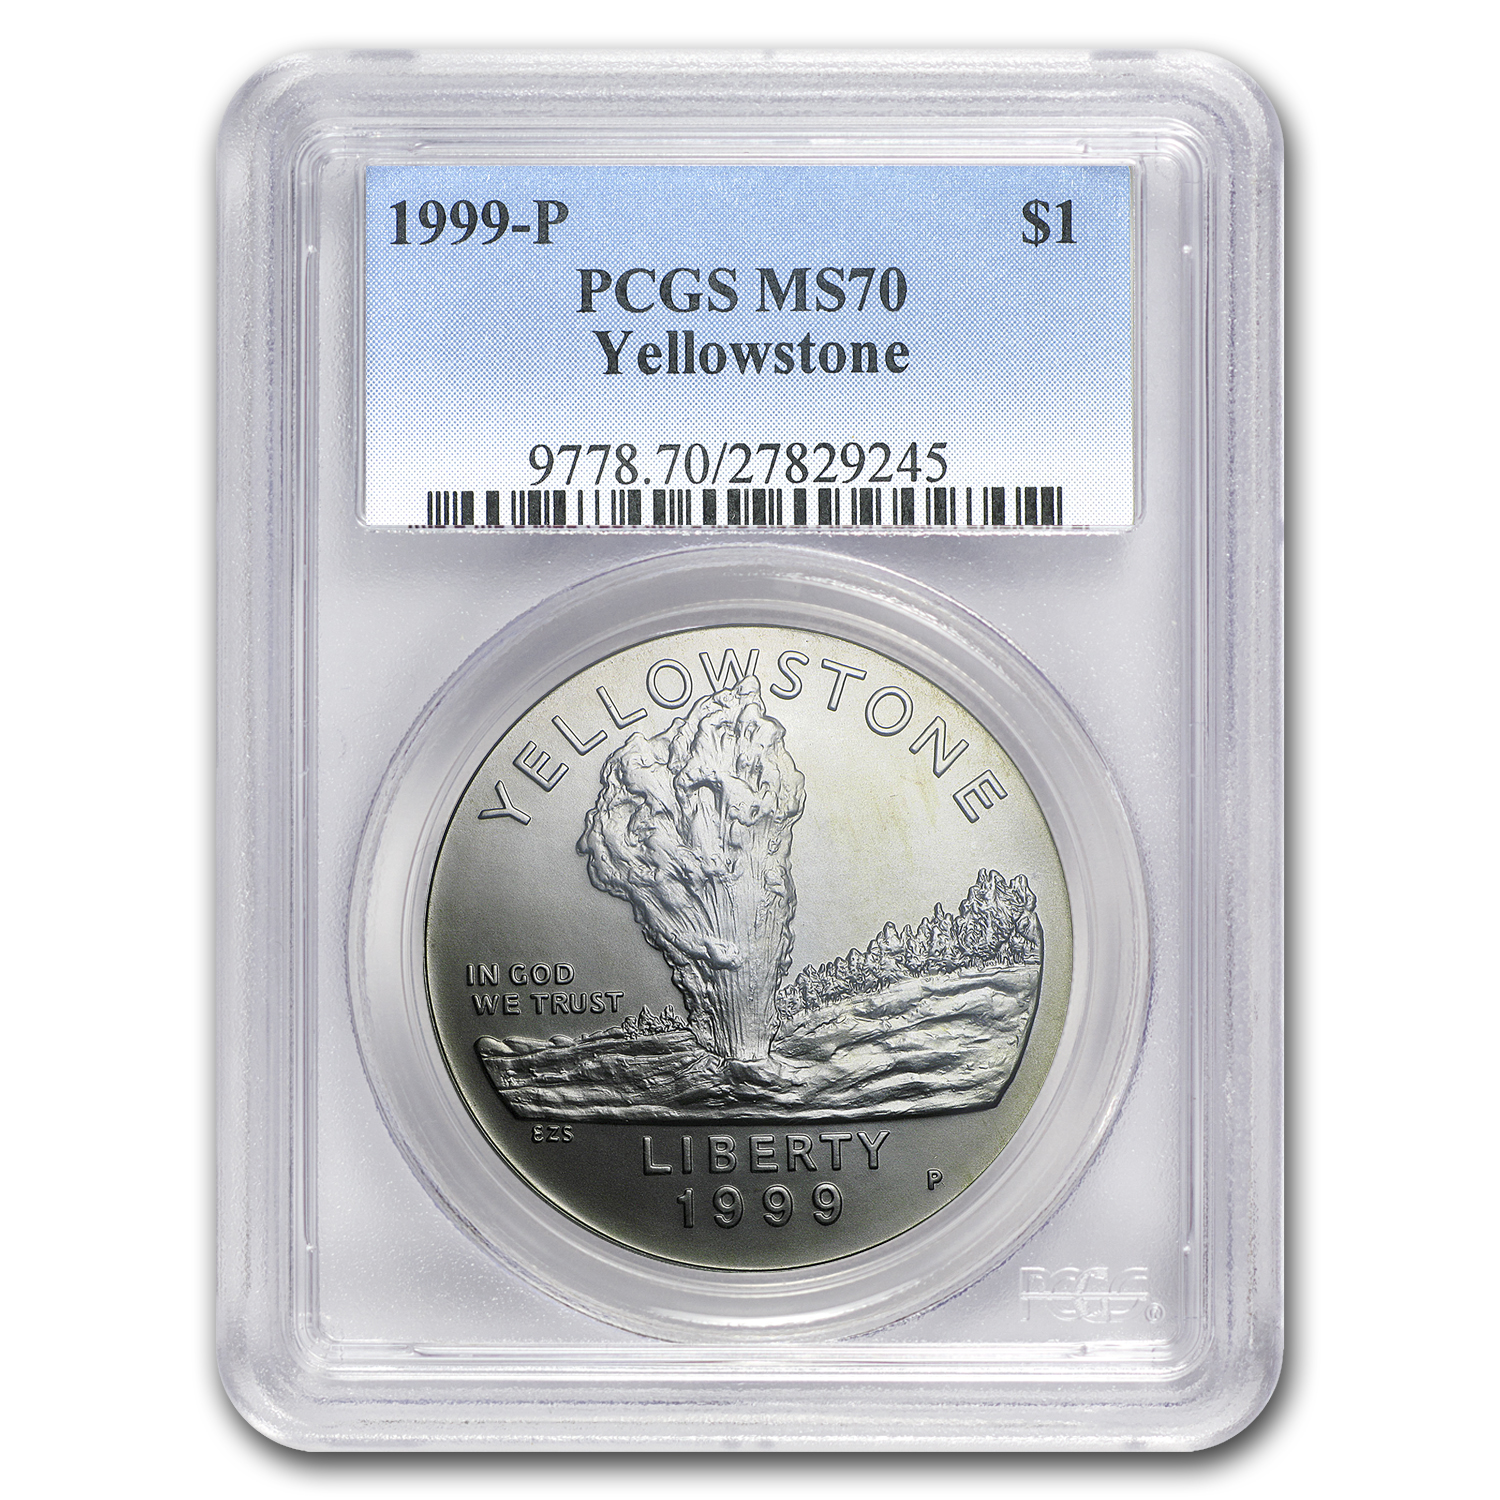 1999-P Yellowstone Park $1 Silver Commemorative MS-70 PCGS